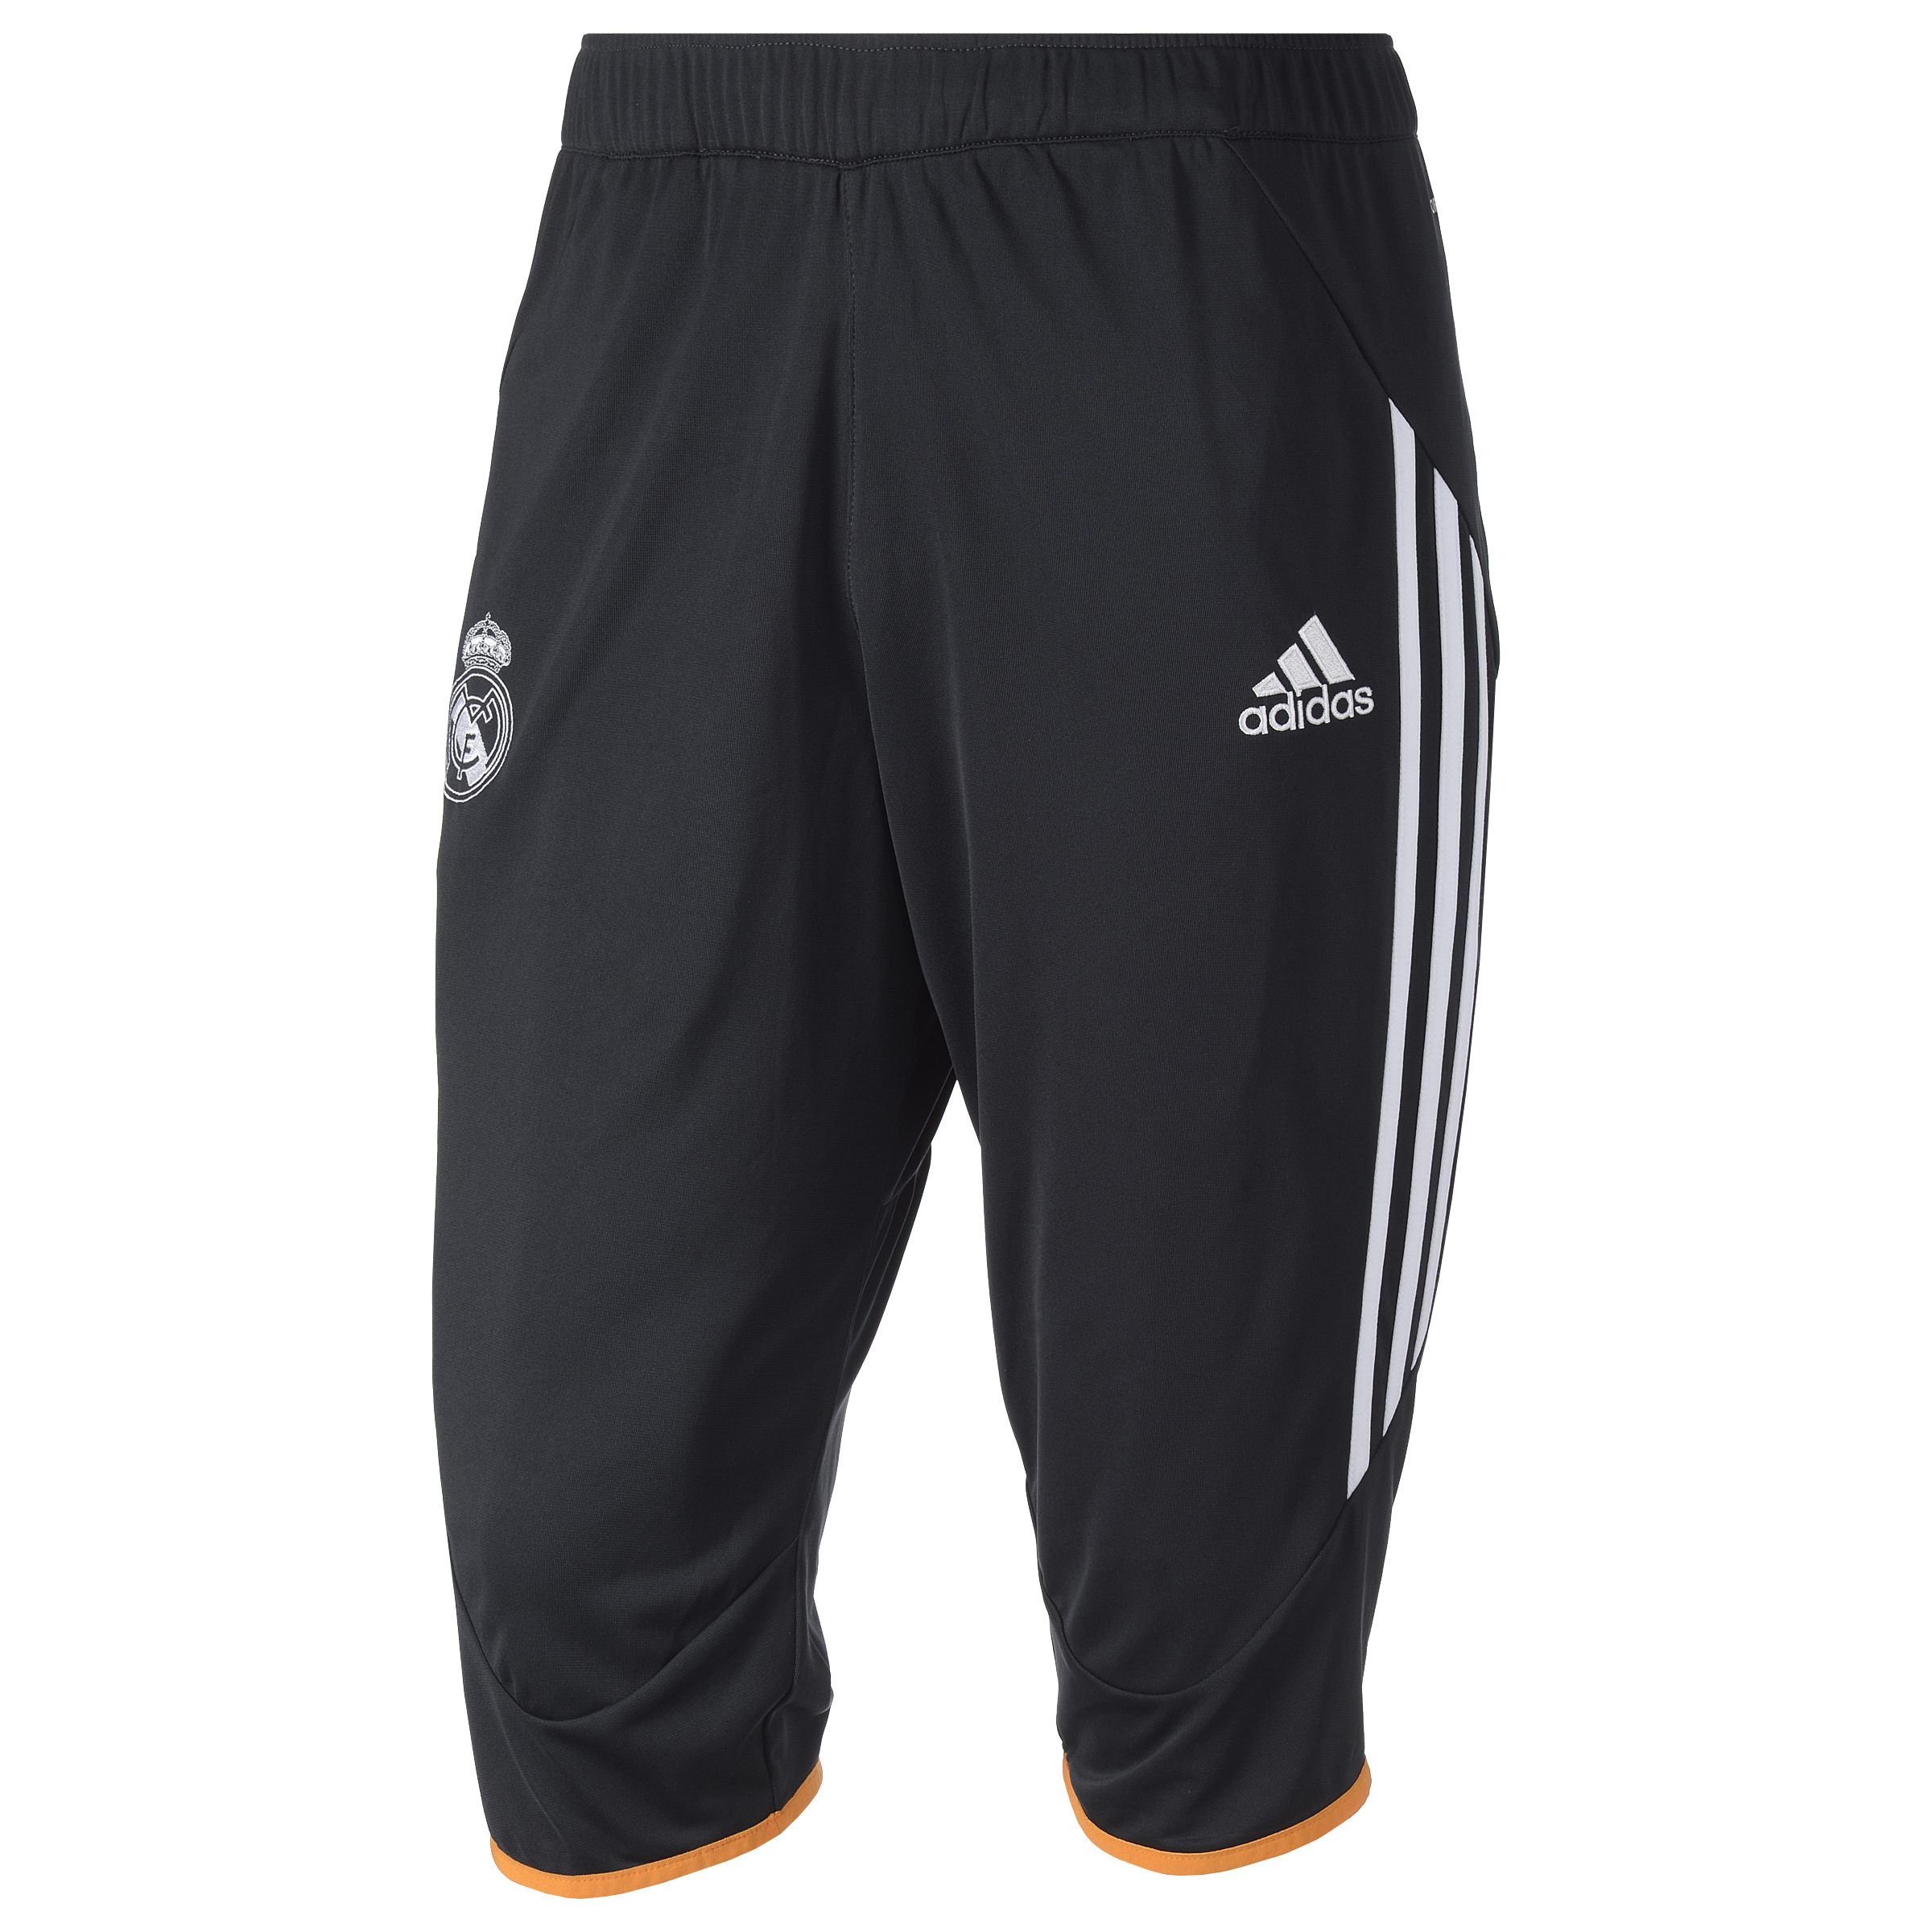 Real Madrid Training 3/4 Pant - Mens Black